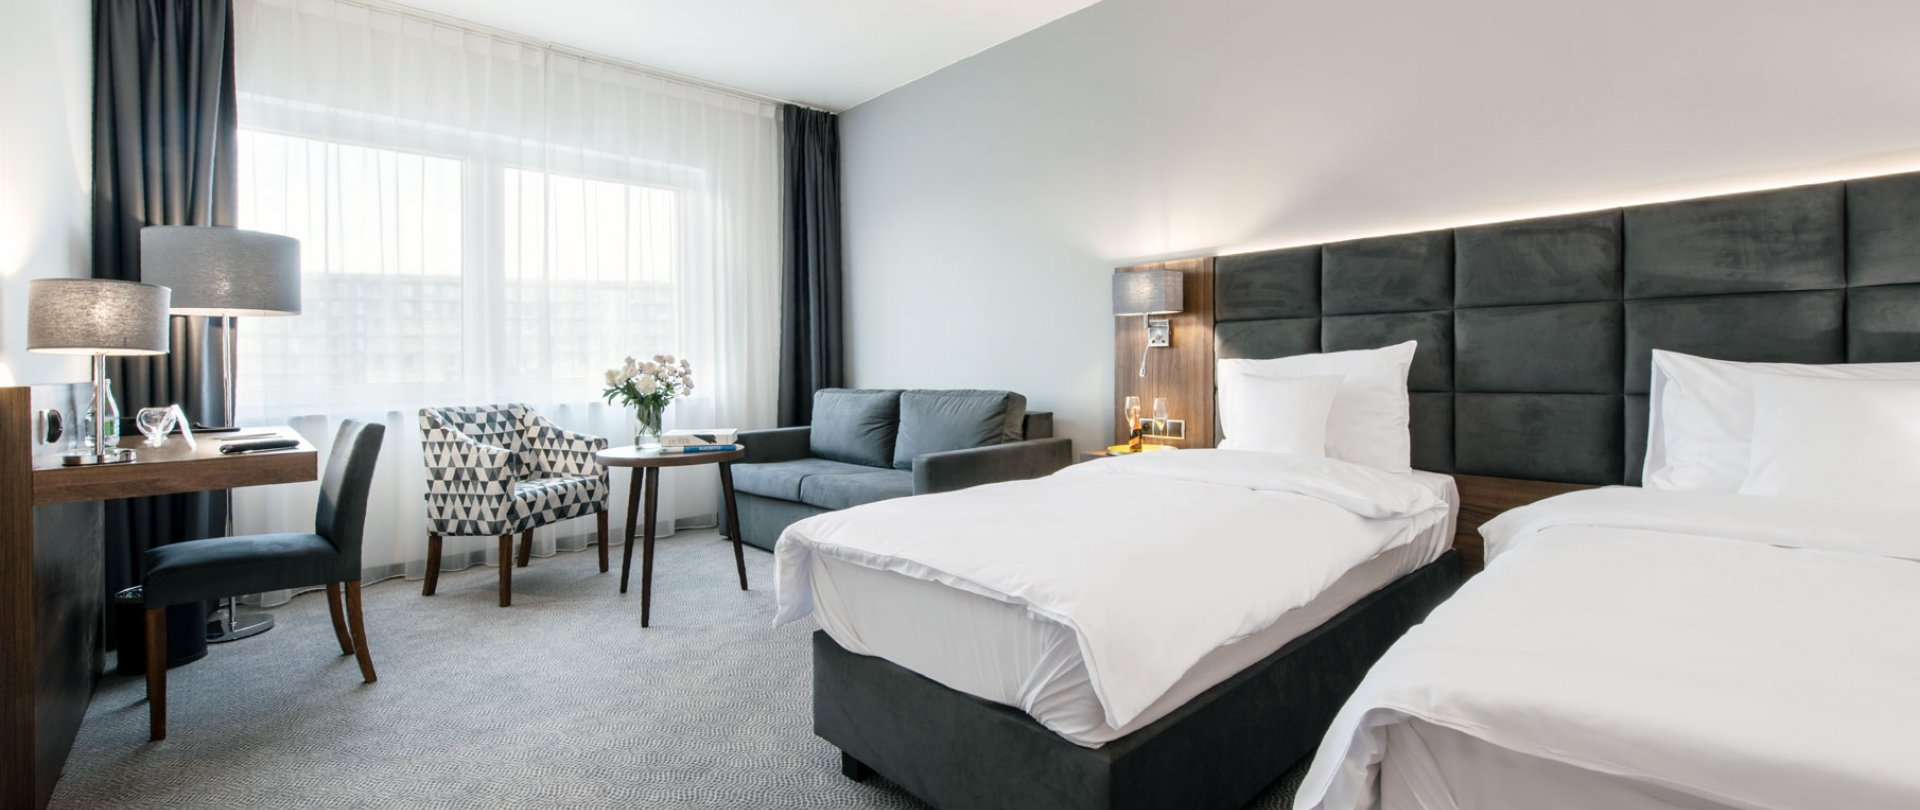 Premium double room with two separate beds